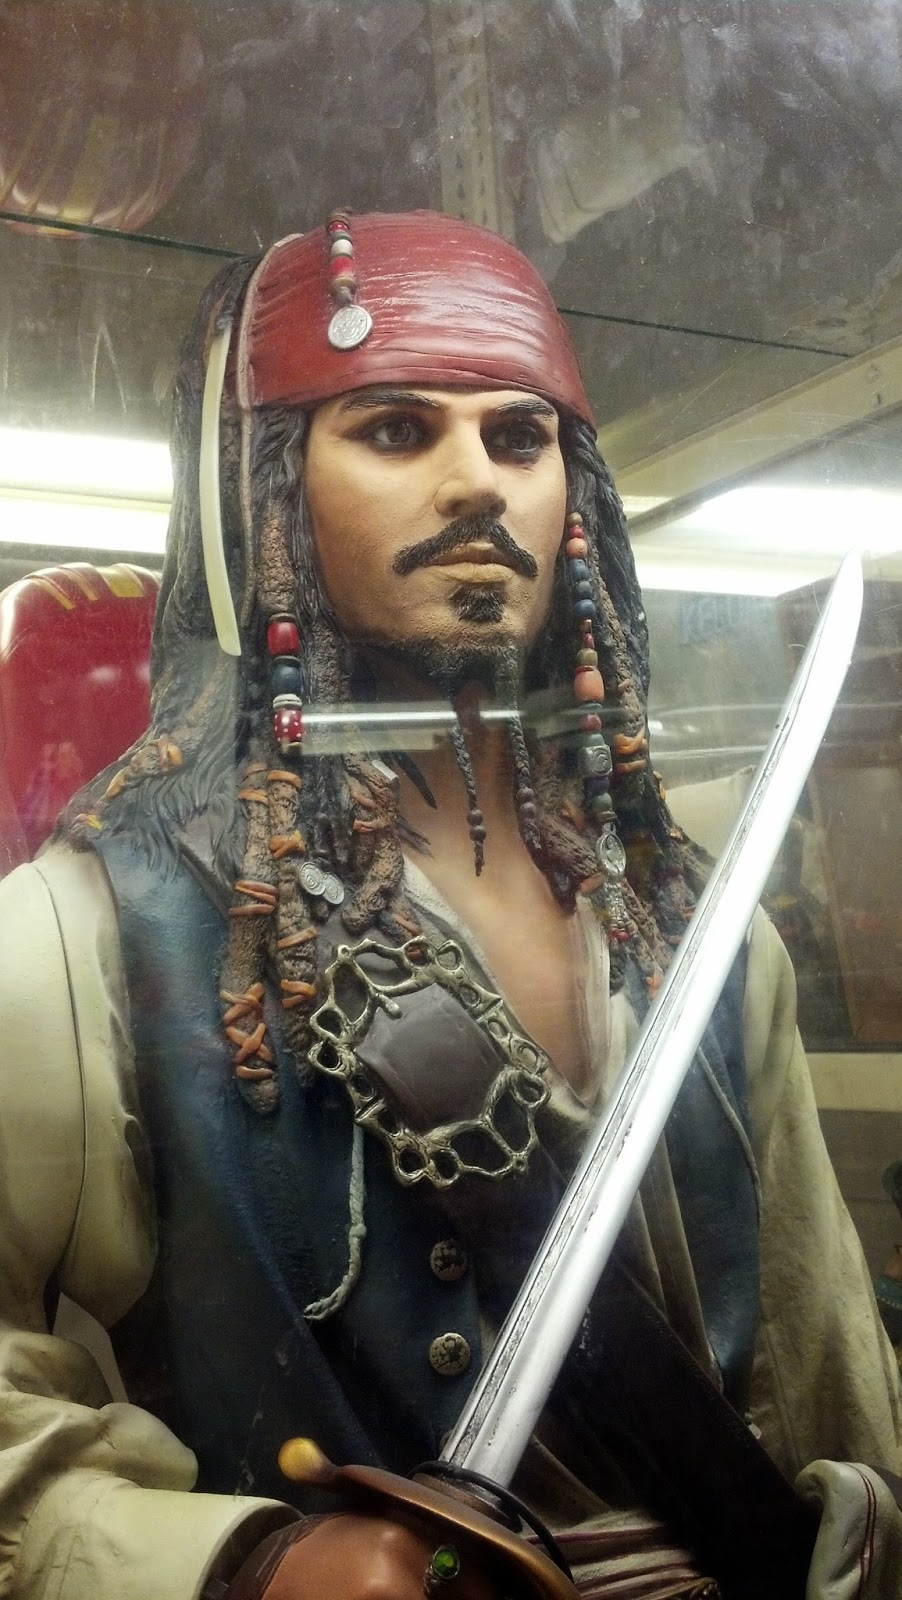 jack sparrow,disney hero,johhy deep doll